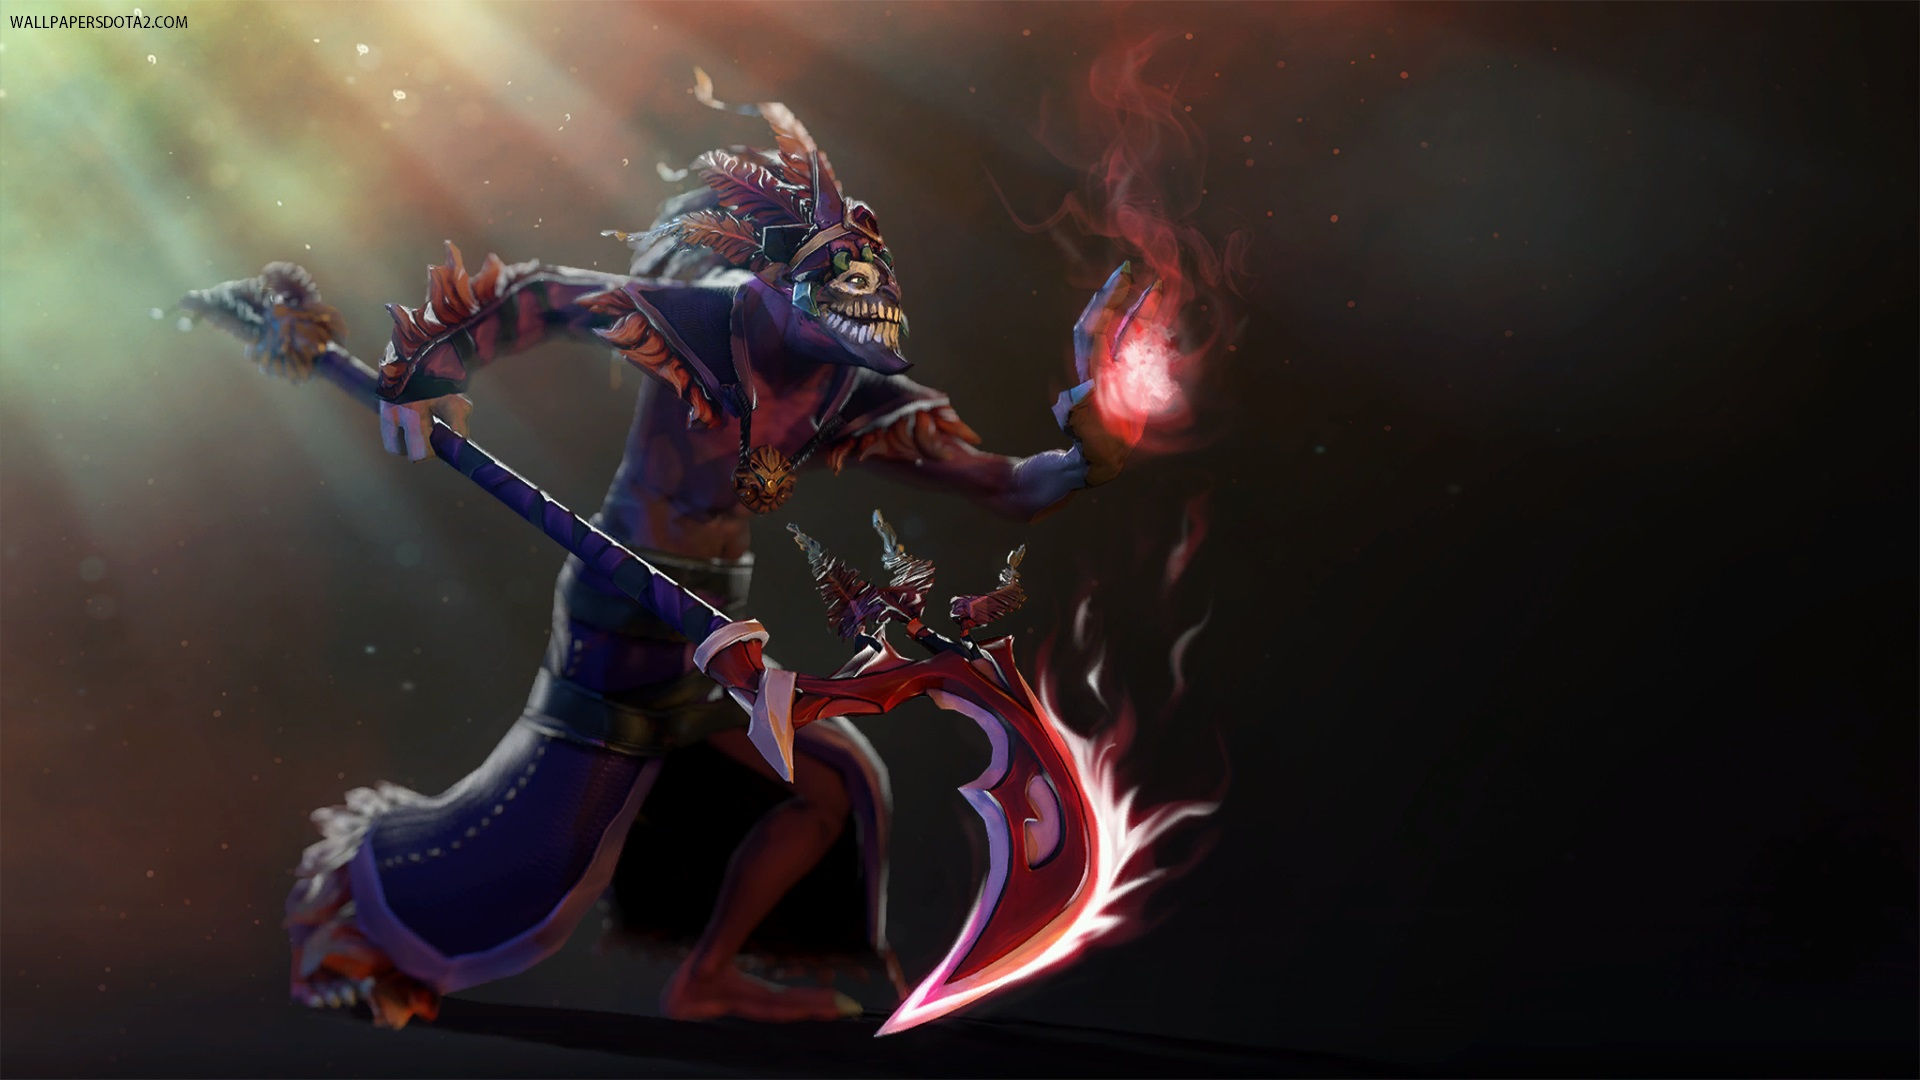 Dazzle Shadow Flame backgrounds for laptops Dota 2